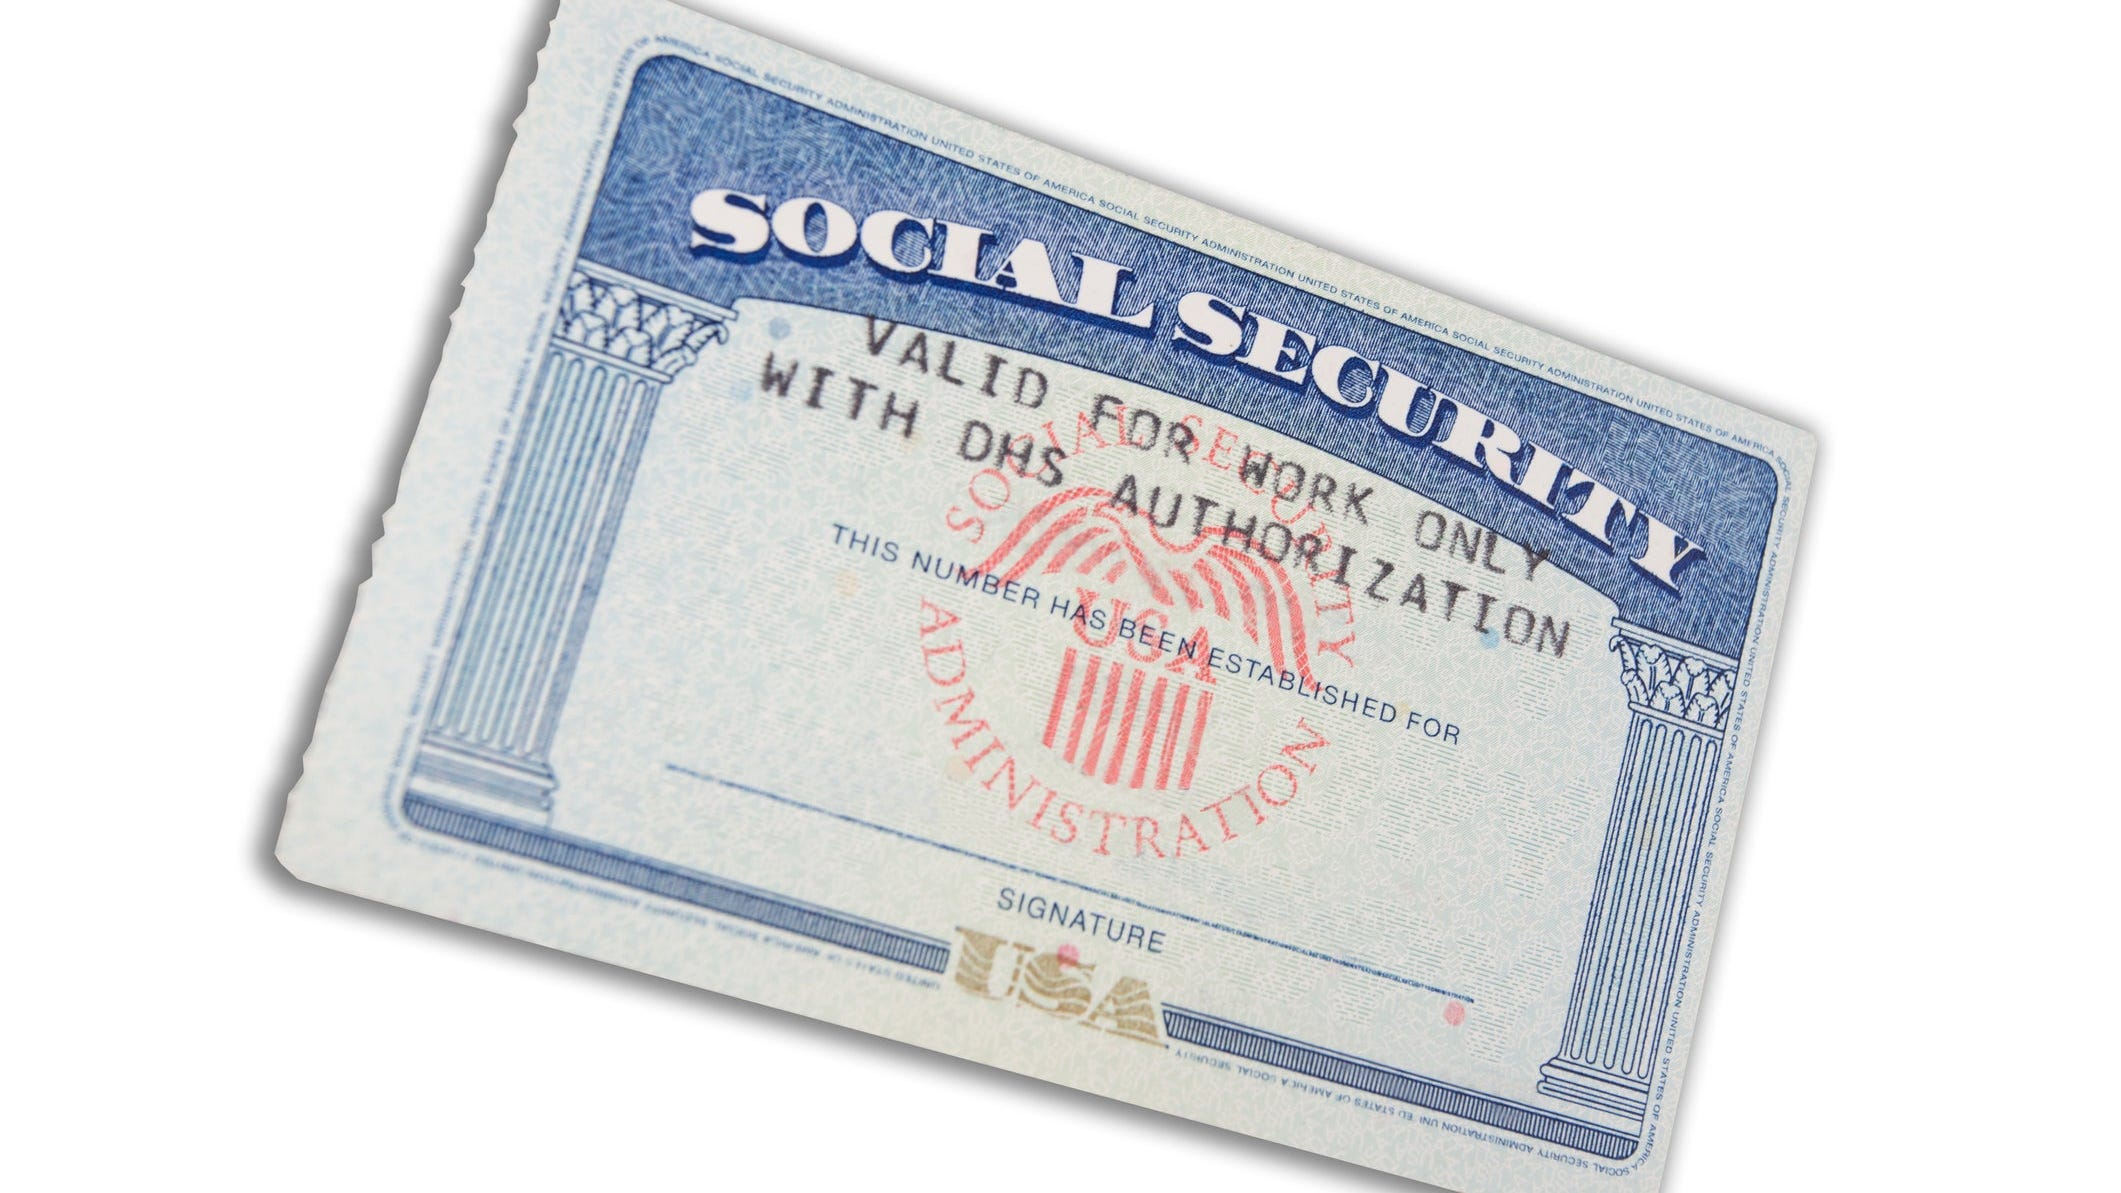 Missing years? Zeroes? Here are key things to understand about your Social Security statements